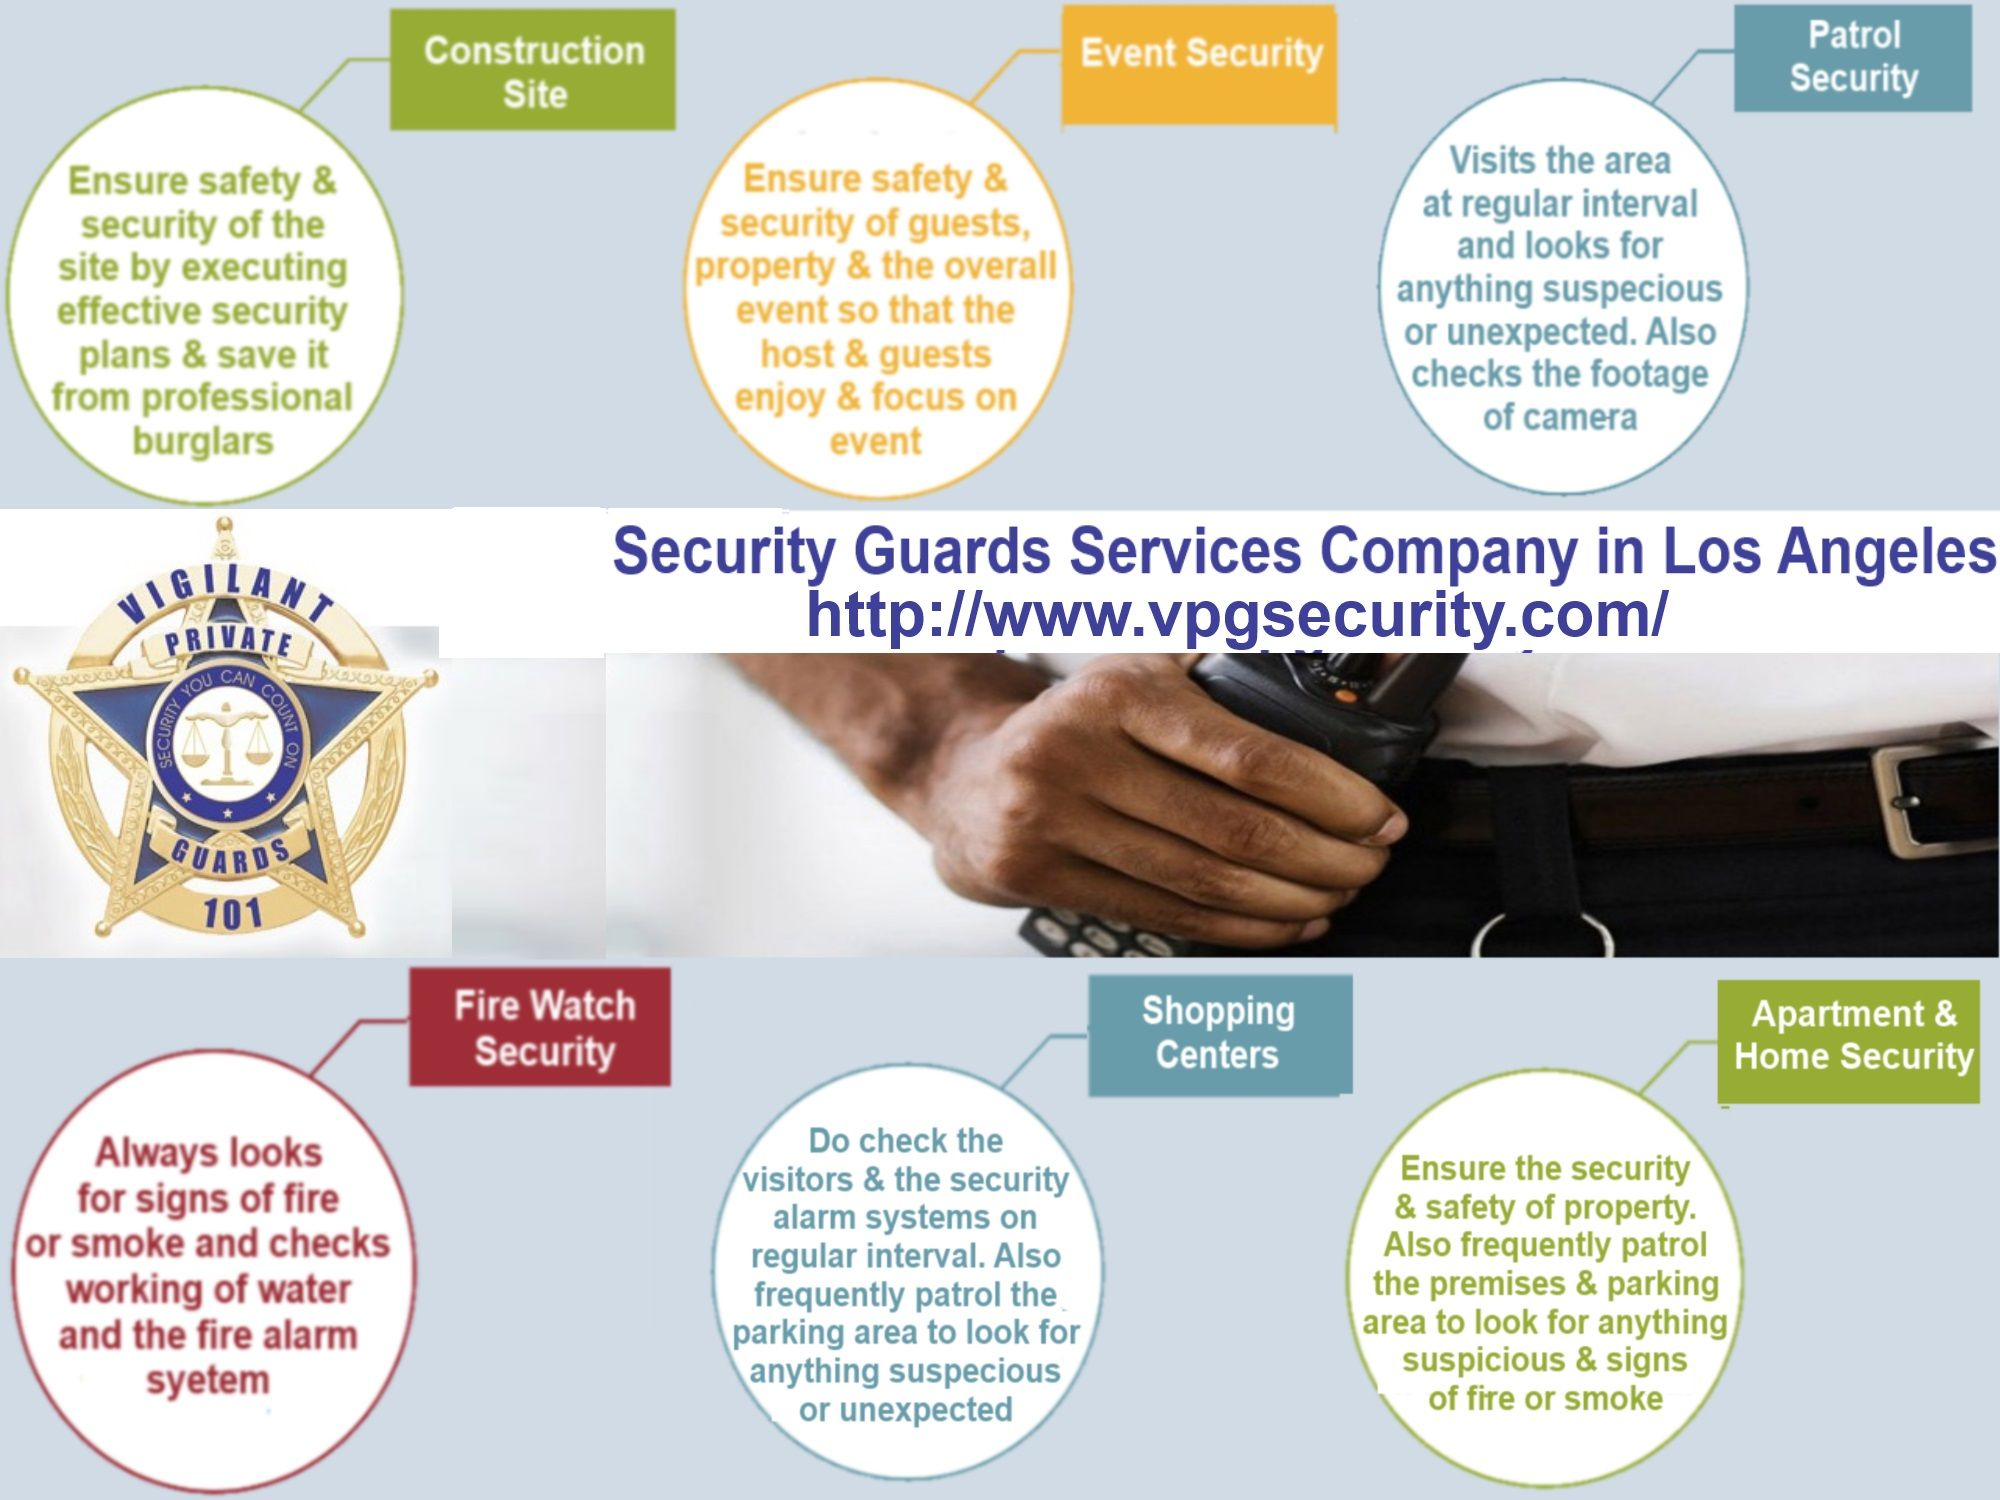 Choose A Professional Security Company For Construction Sites, Fire Watch,  Shopping Centers, Home